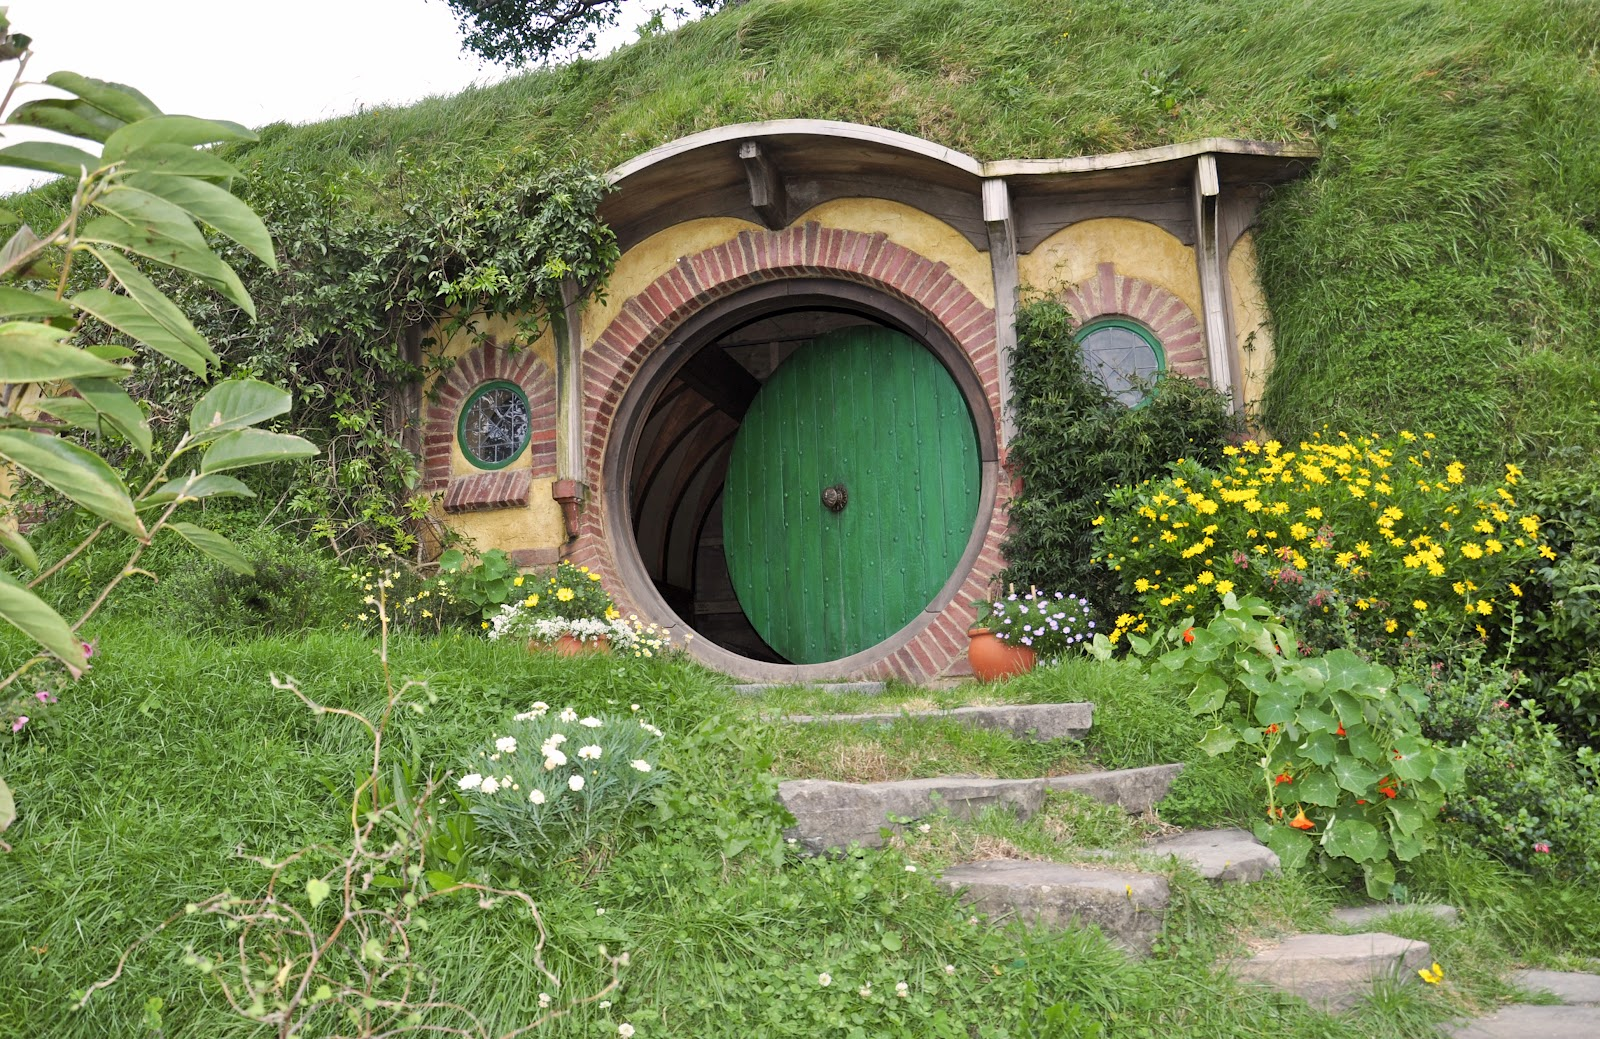 My traveler 39 s journal two weeks in new zealand for Hobbit house images